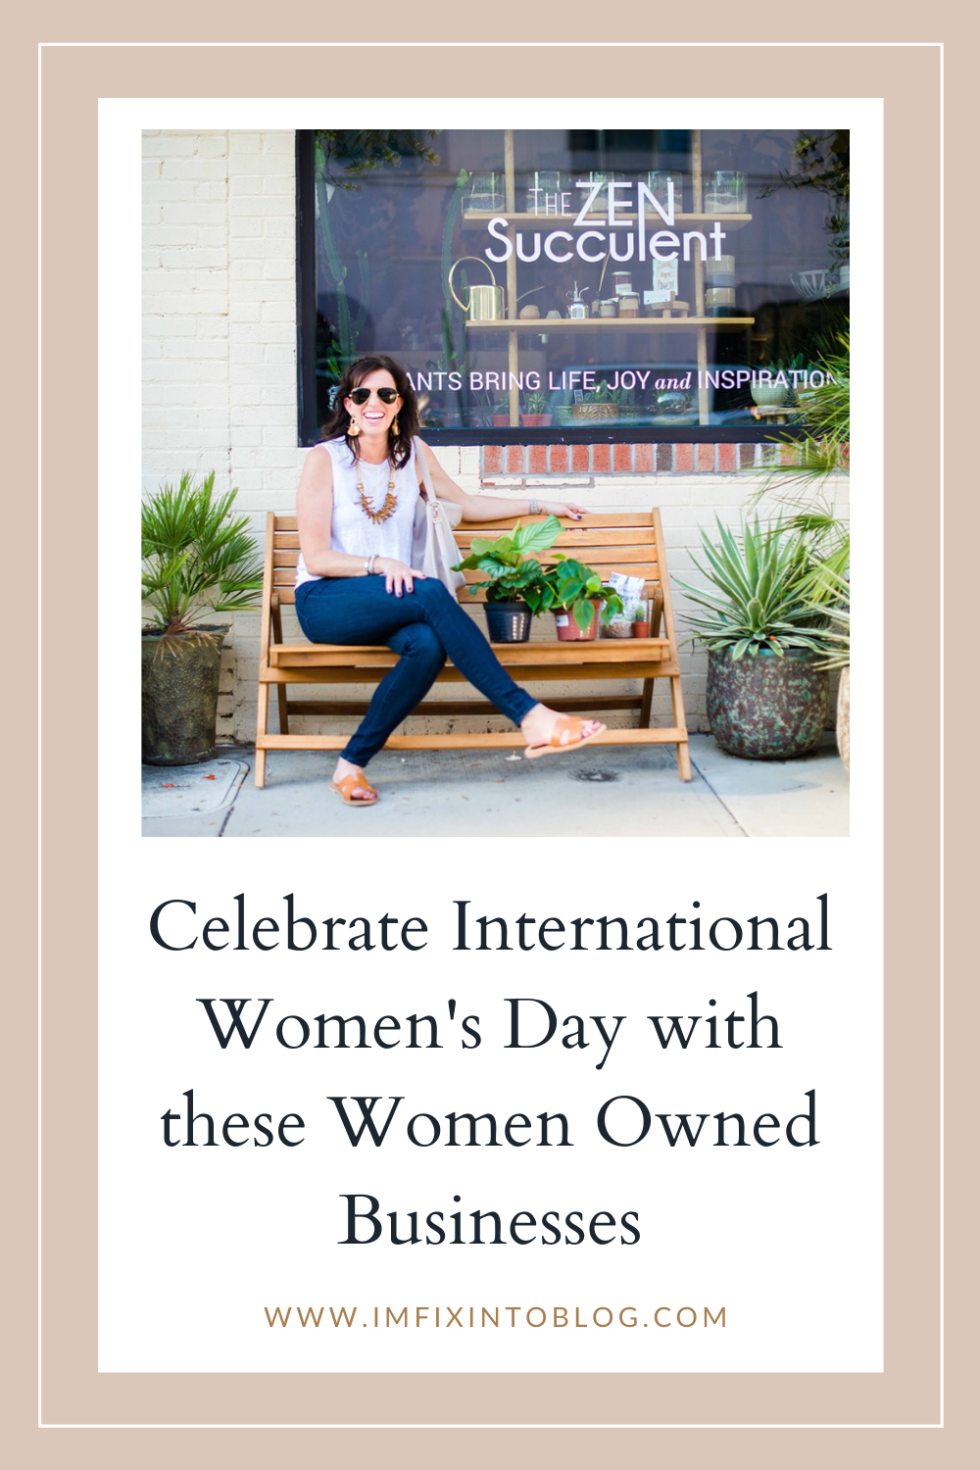 Celebrate International Women's Day with these Women Owned Businesses - I'm Fixin' To - @imfixintoblog |Women Owned Businesses by popular NC lifestyle blog, I'm Fixin' To: Pinterest image of a woman sitting on a wooden bench outside in front of the Zen Succulent.